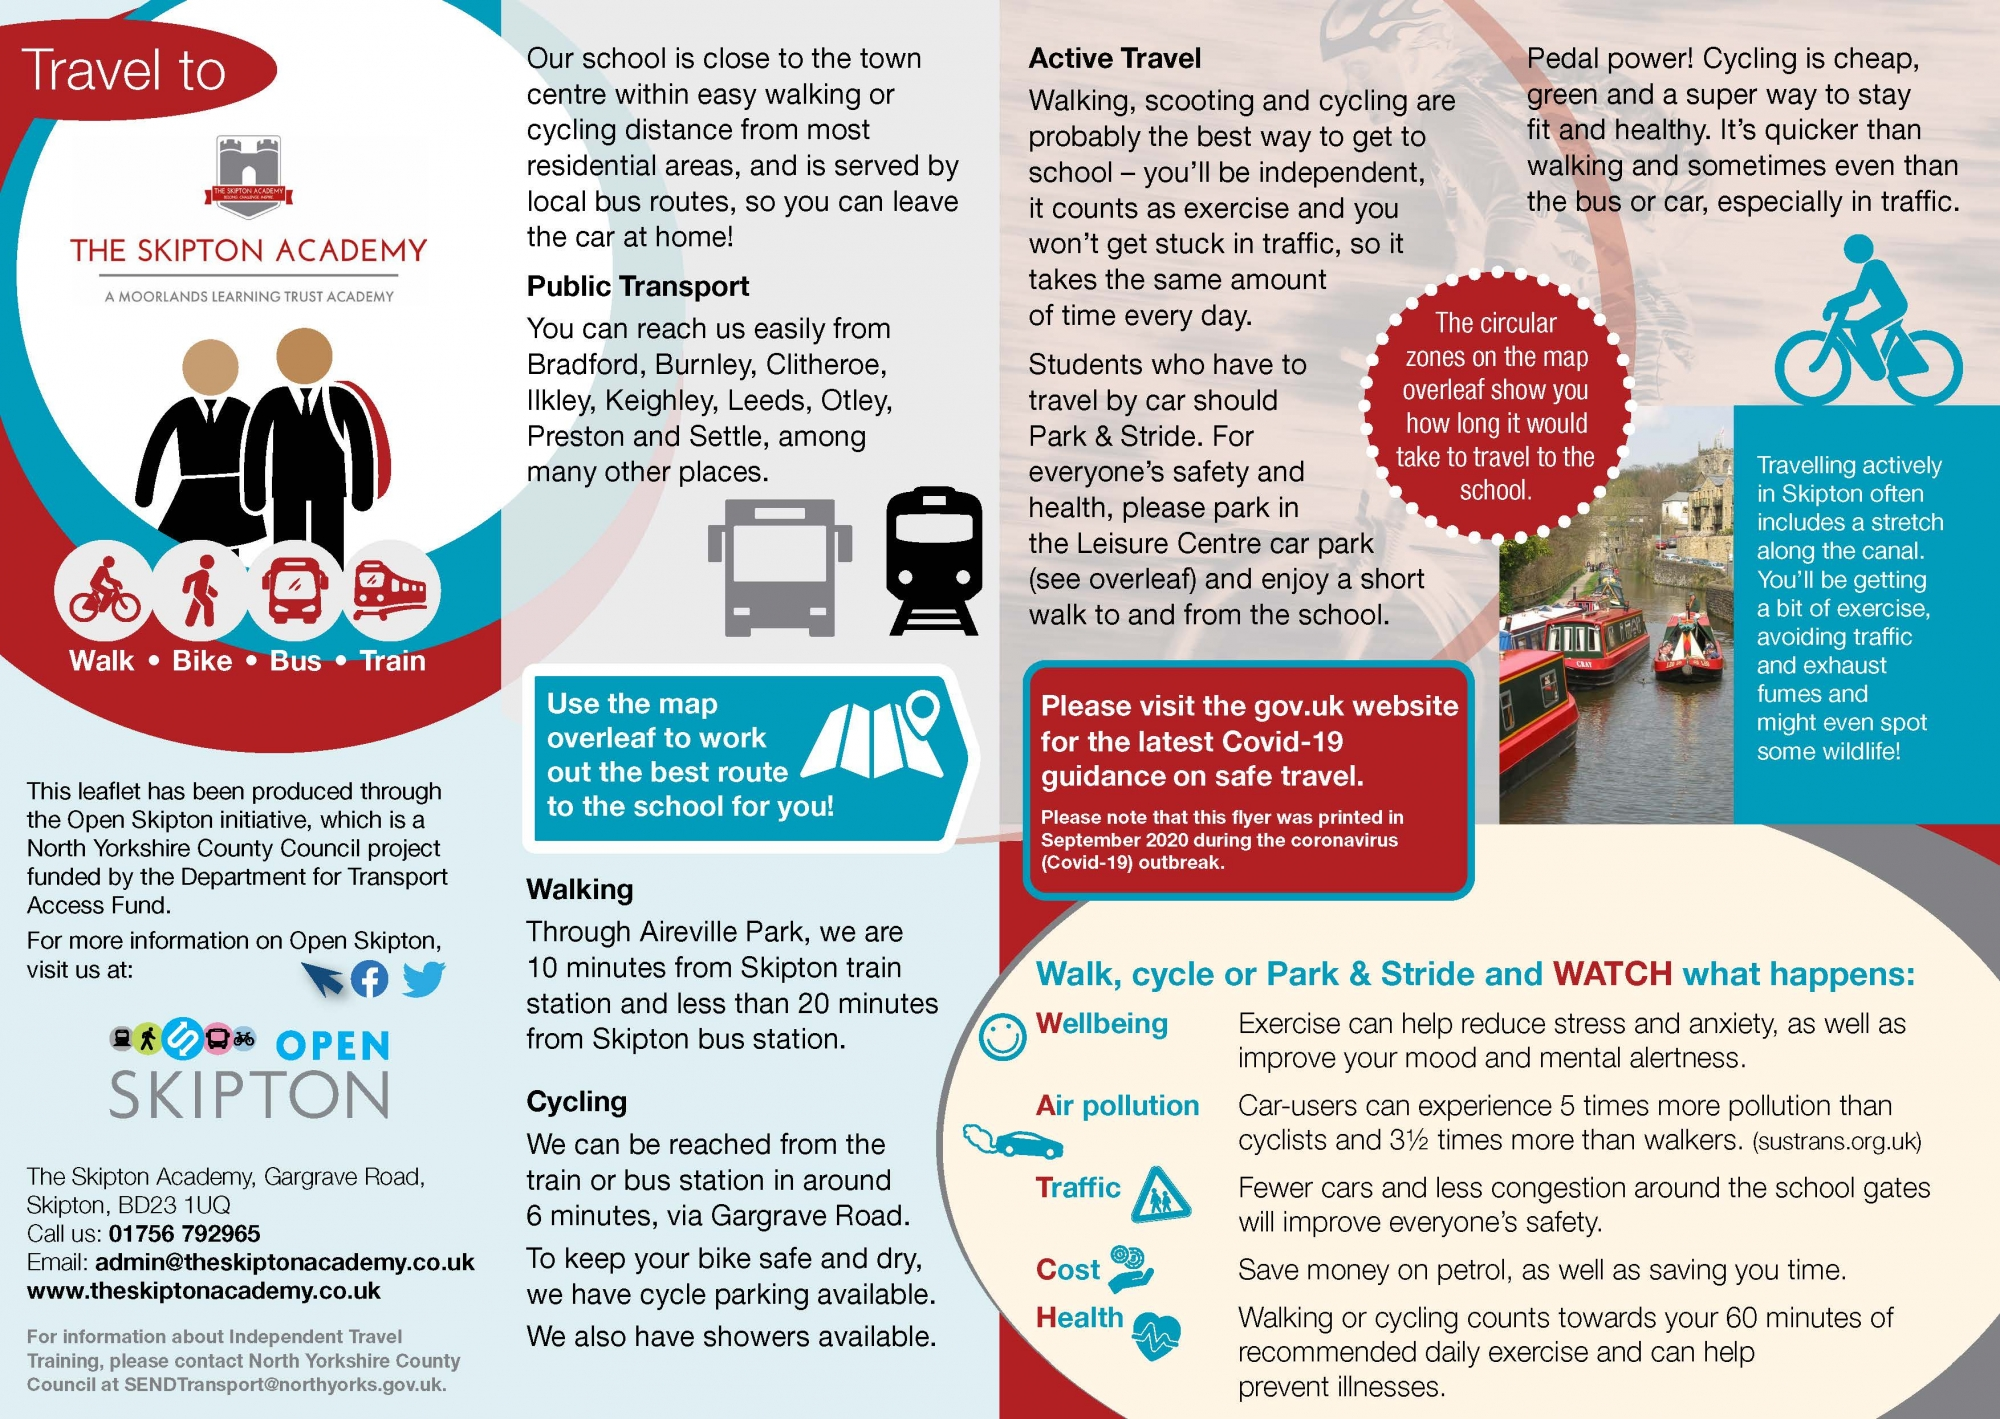 80772_Skipton Academy Travel Leaflet for website - with Covid reference_Page_1